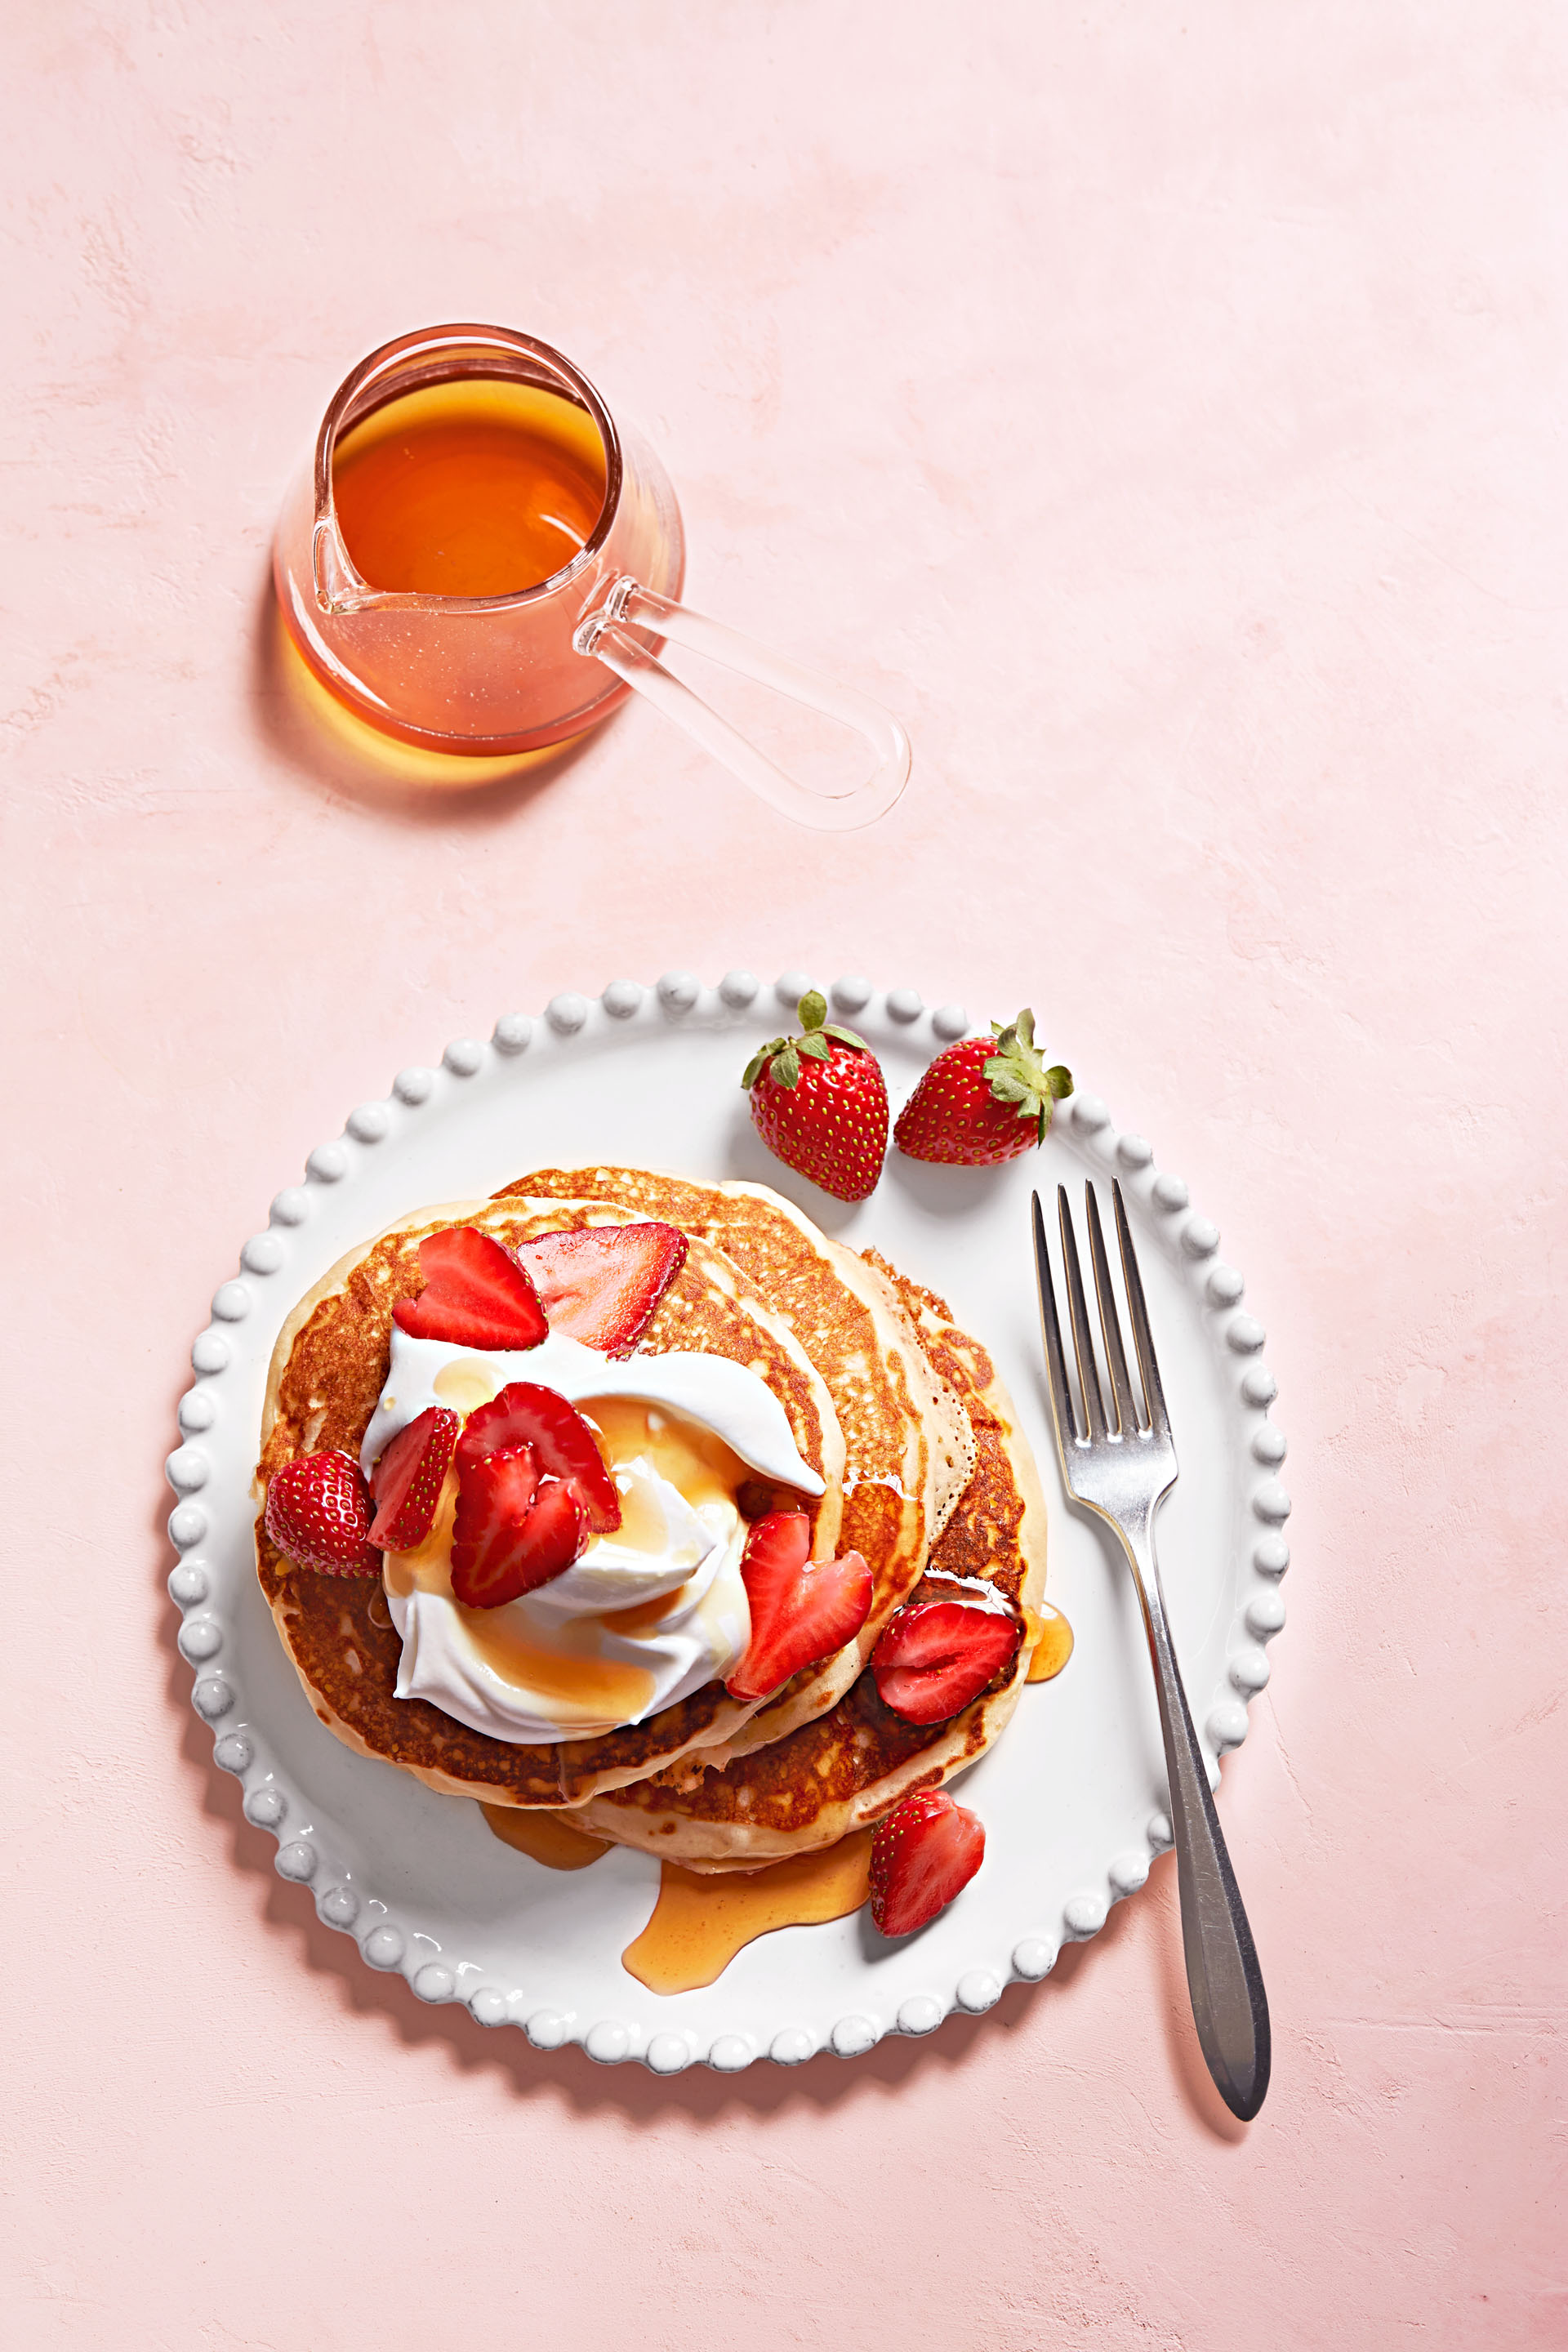 Mother's Day Brunch Recipes for Breakfast in Bed or a Feast at the Table